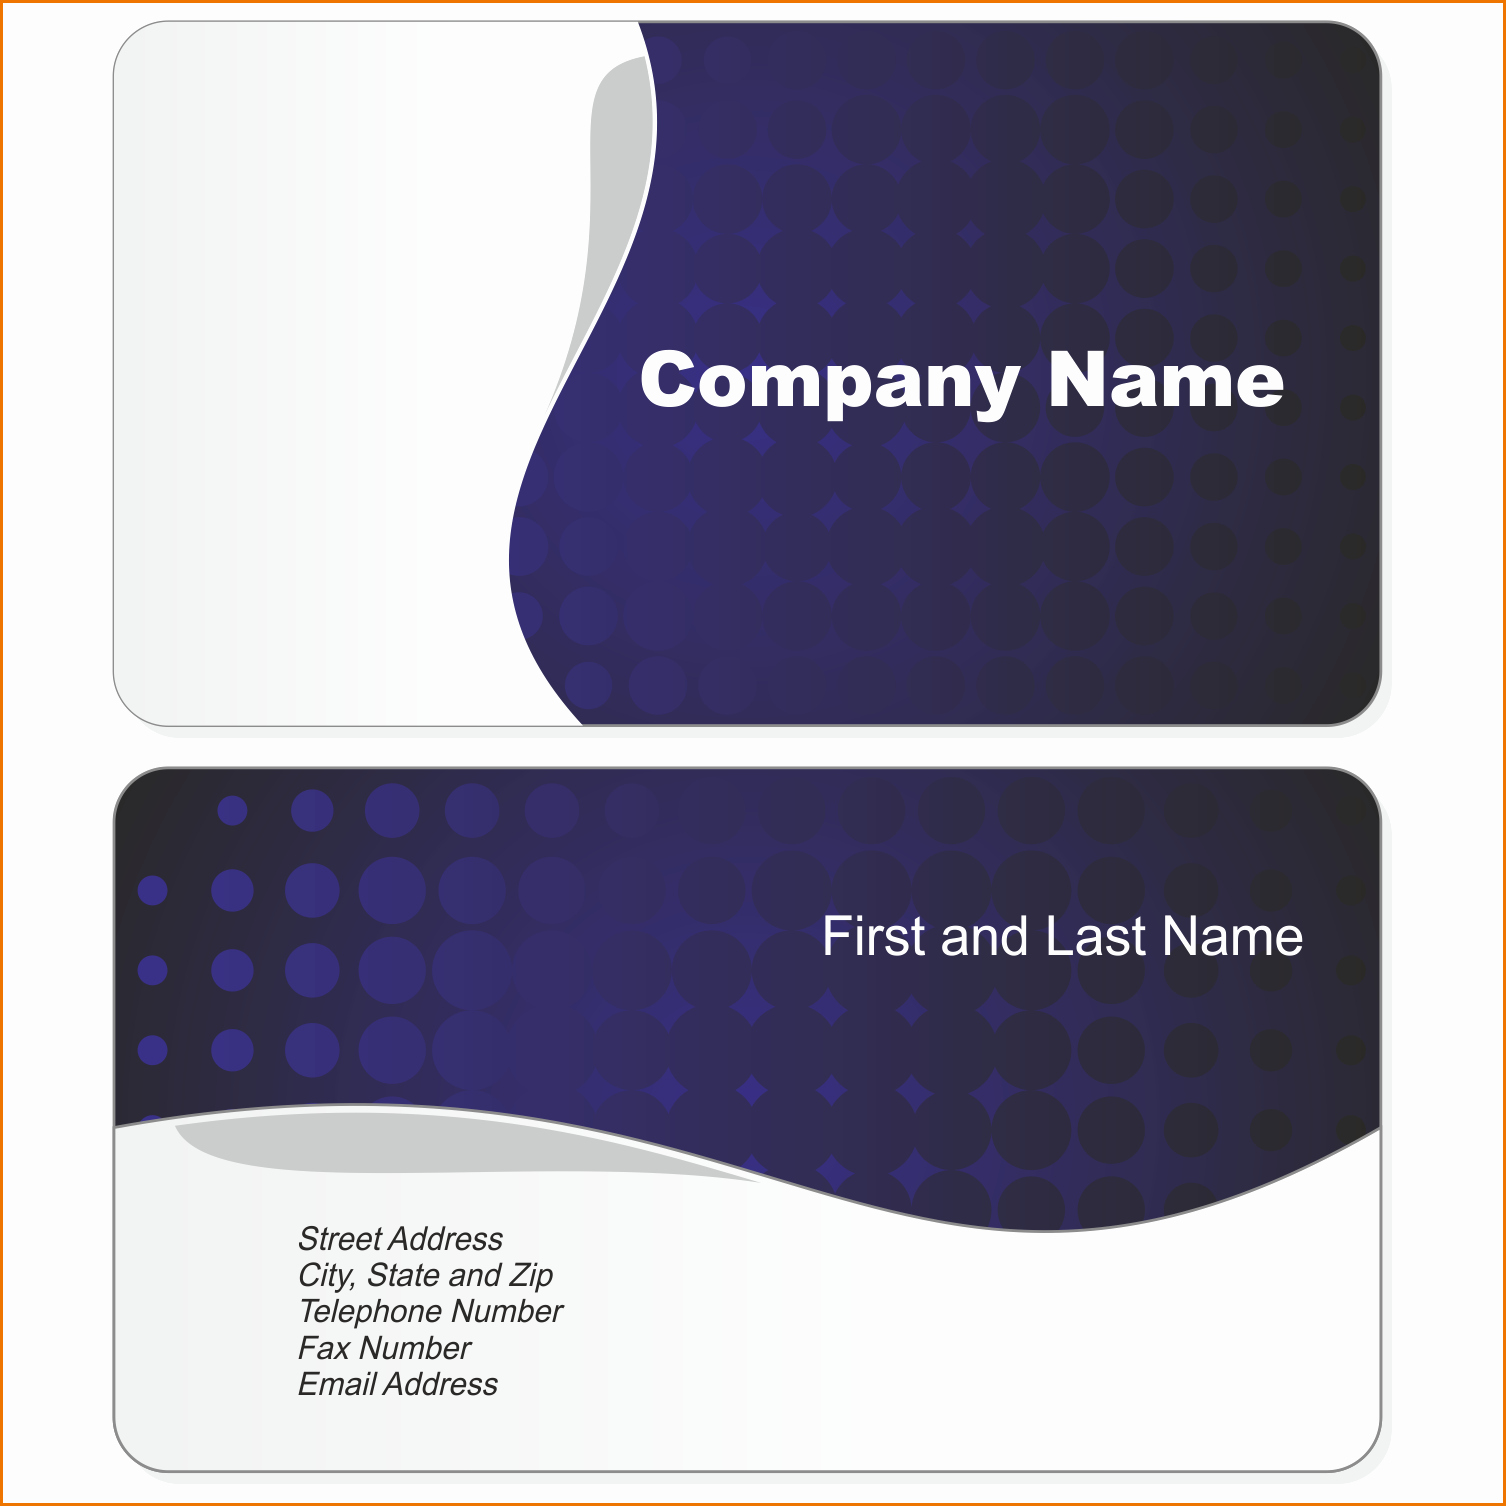 Word Document Business Card Template Elegant Business Card Layout Template Word Beautiful Template